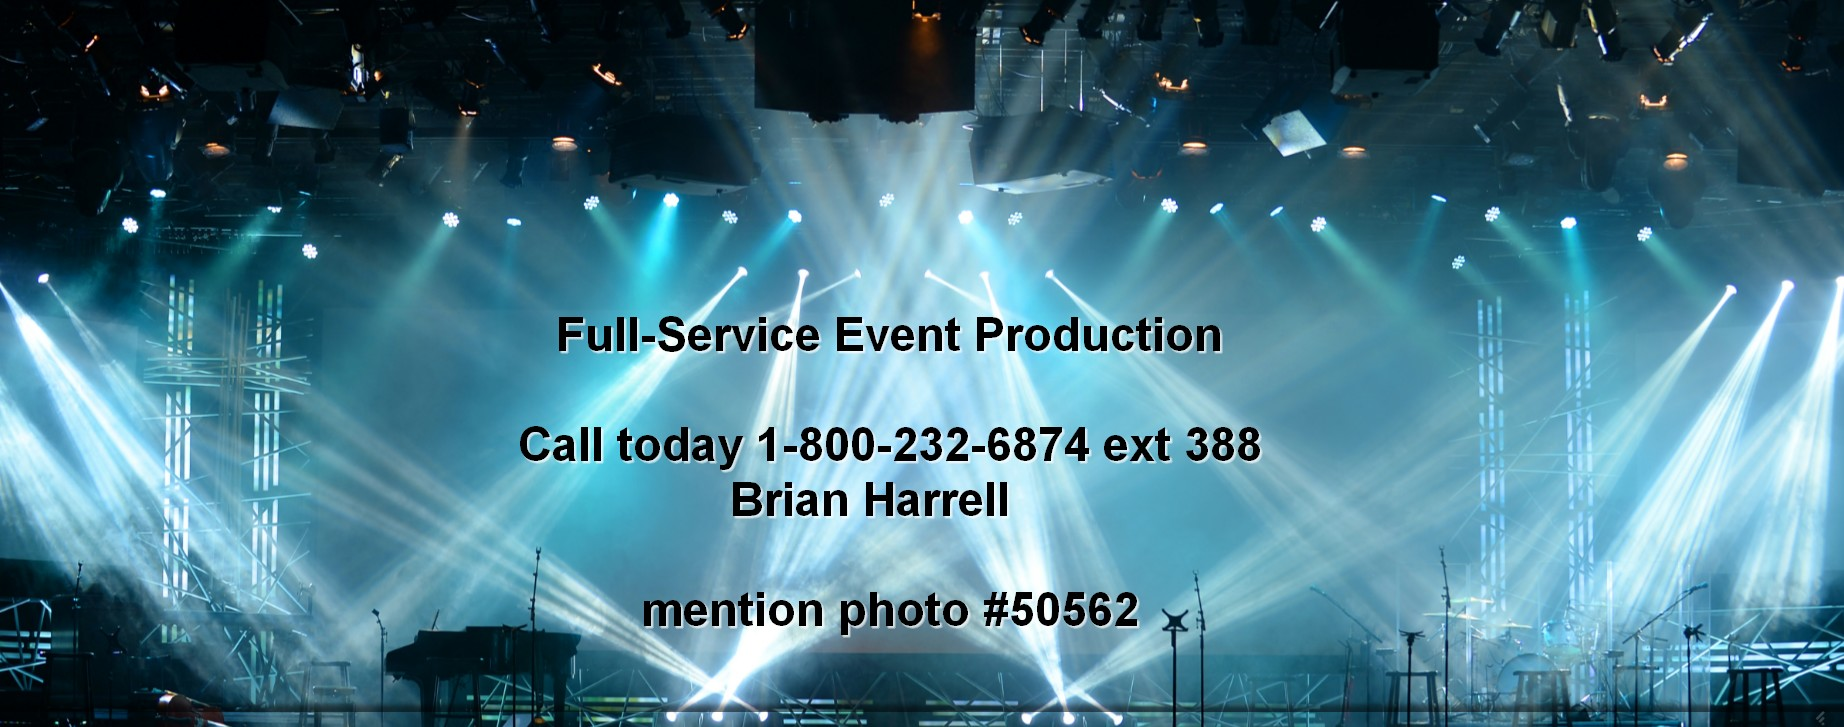 full service event production concert production services nationwide